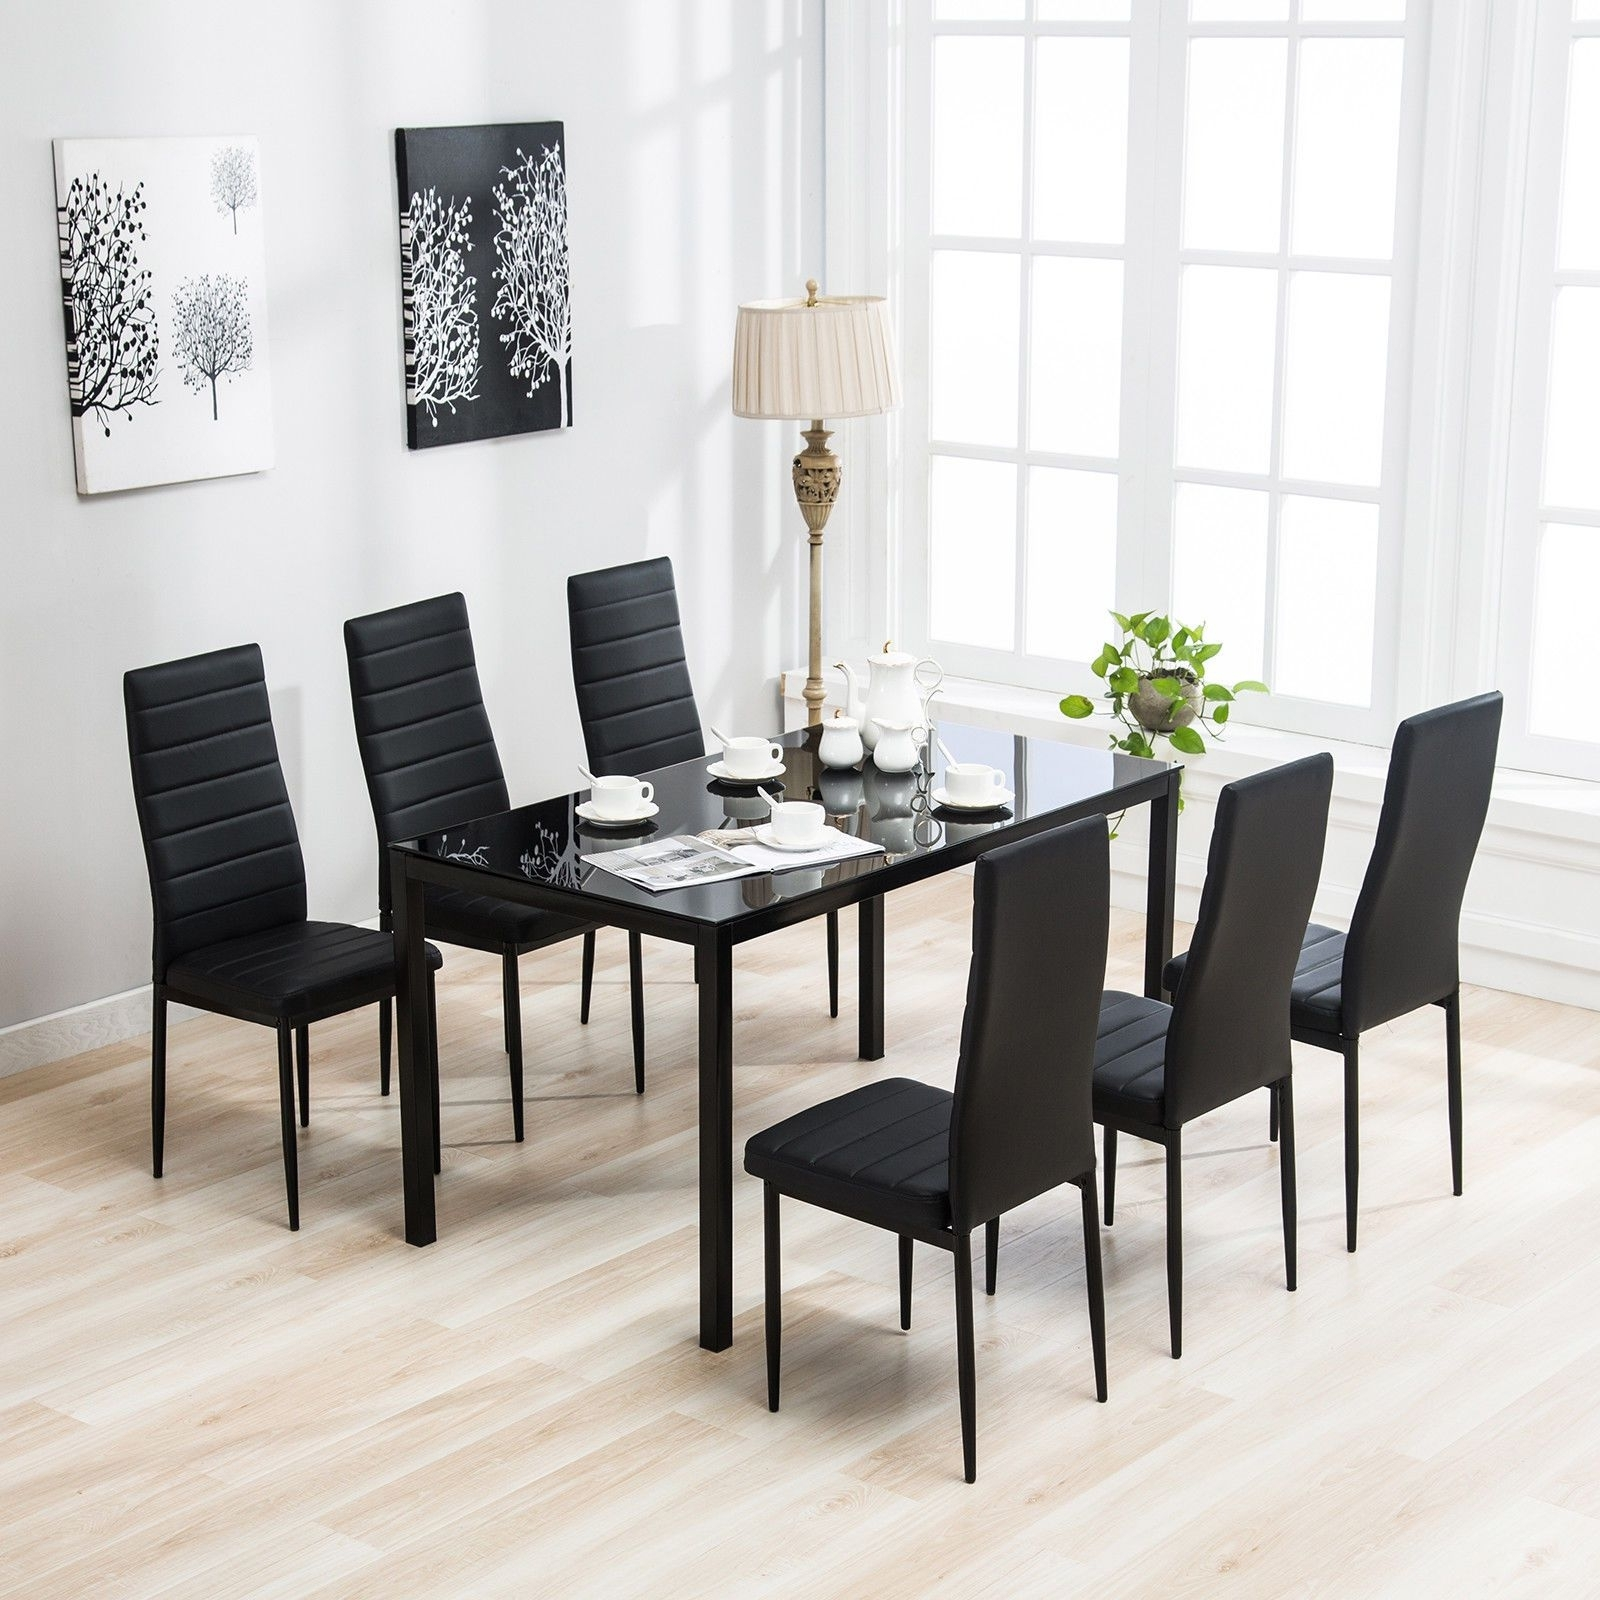 Current Glass Dining Tables 6 Chairs Inside 7 Piece Dining Table Set 6 Chairs Black Glass Metal Kitchen Room (View 24 of 25)